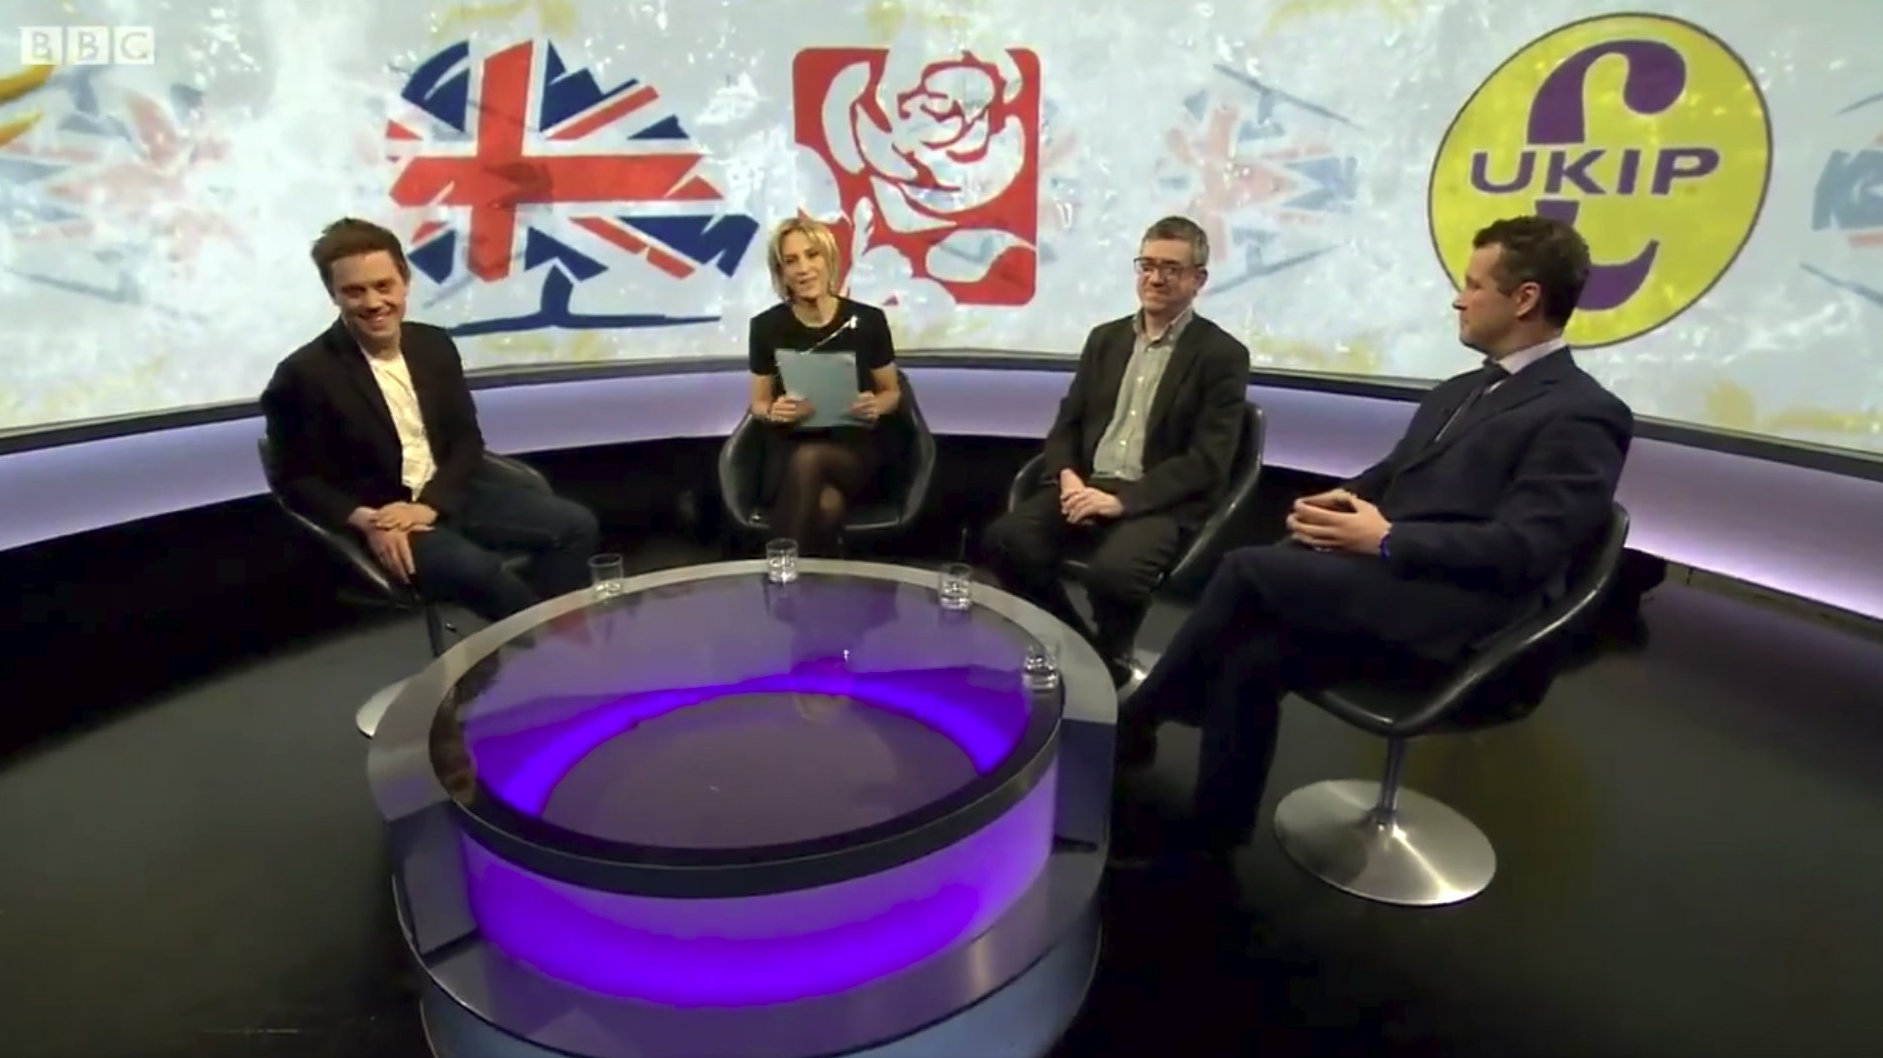 BBC issues apology after SNP's omission from Newsnight logo